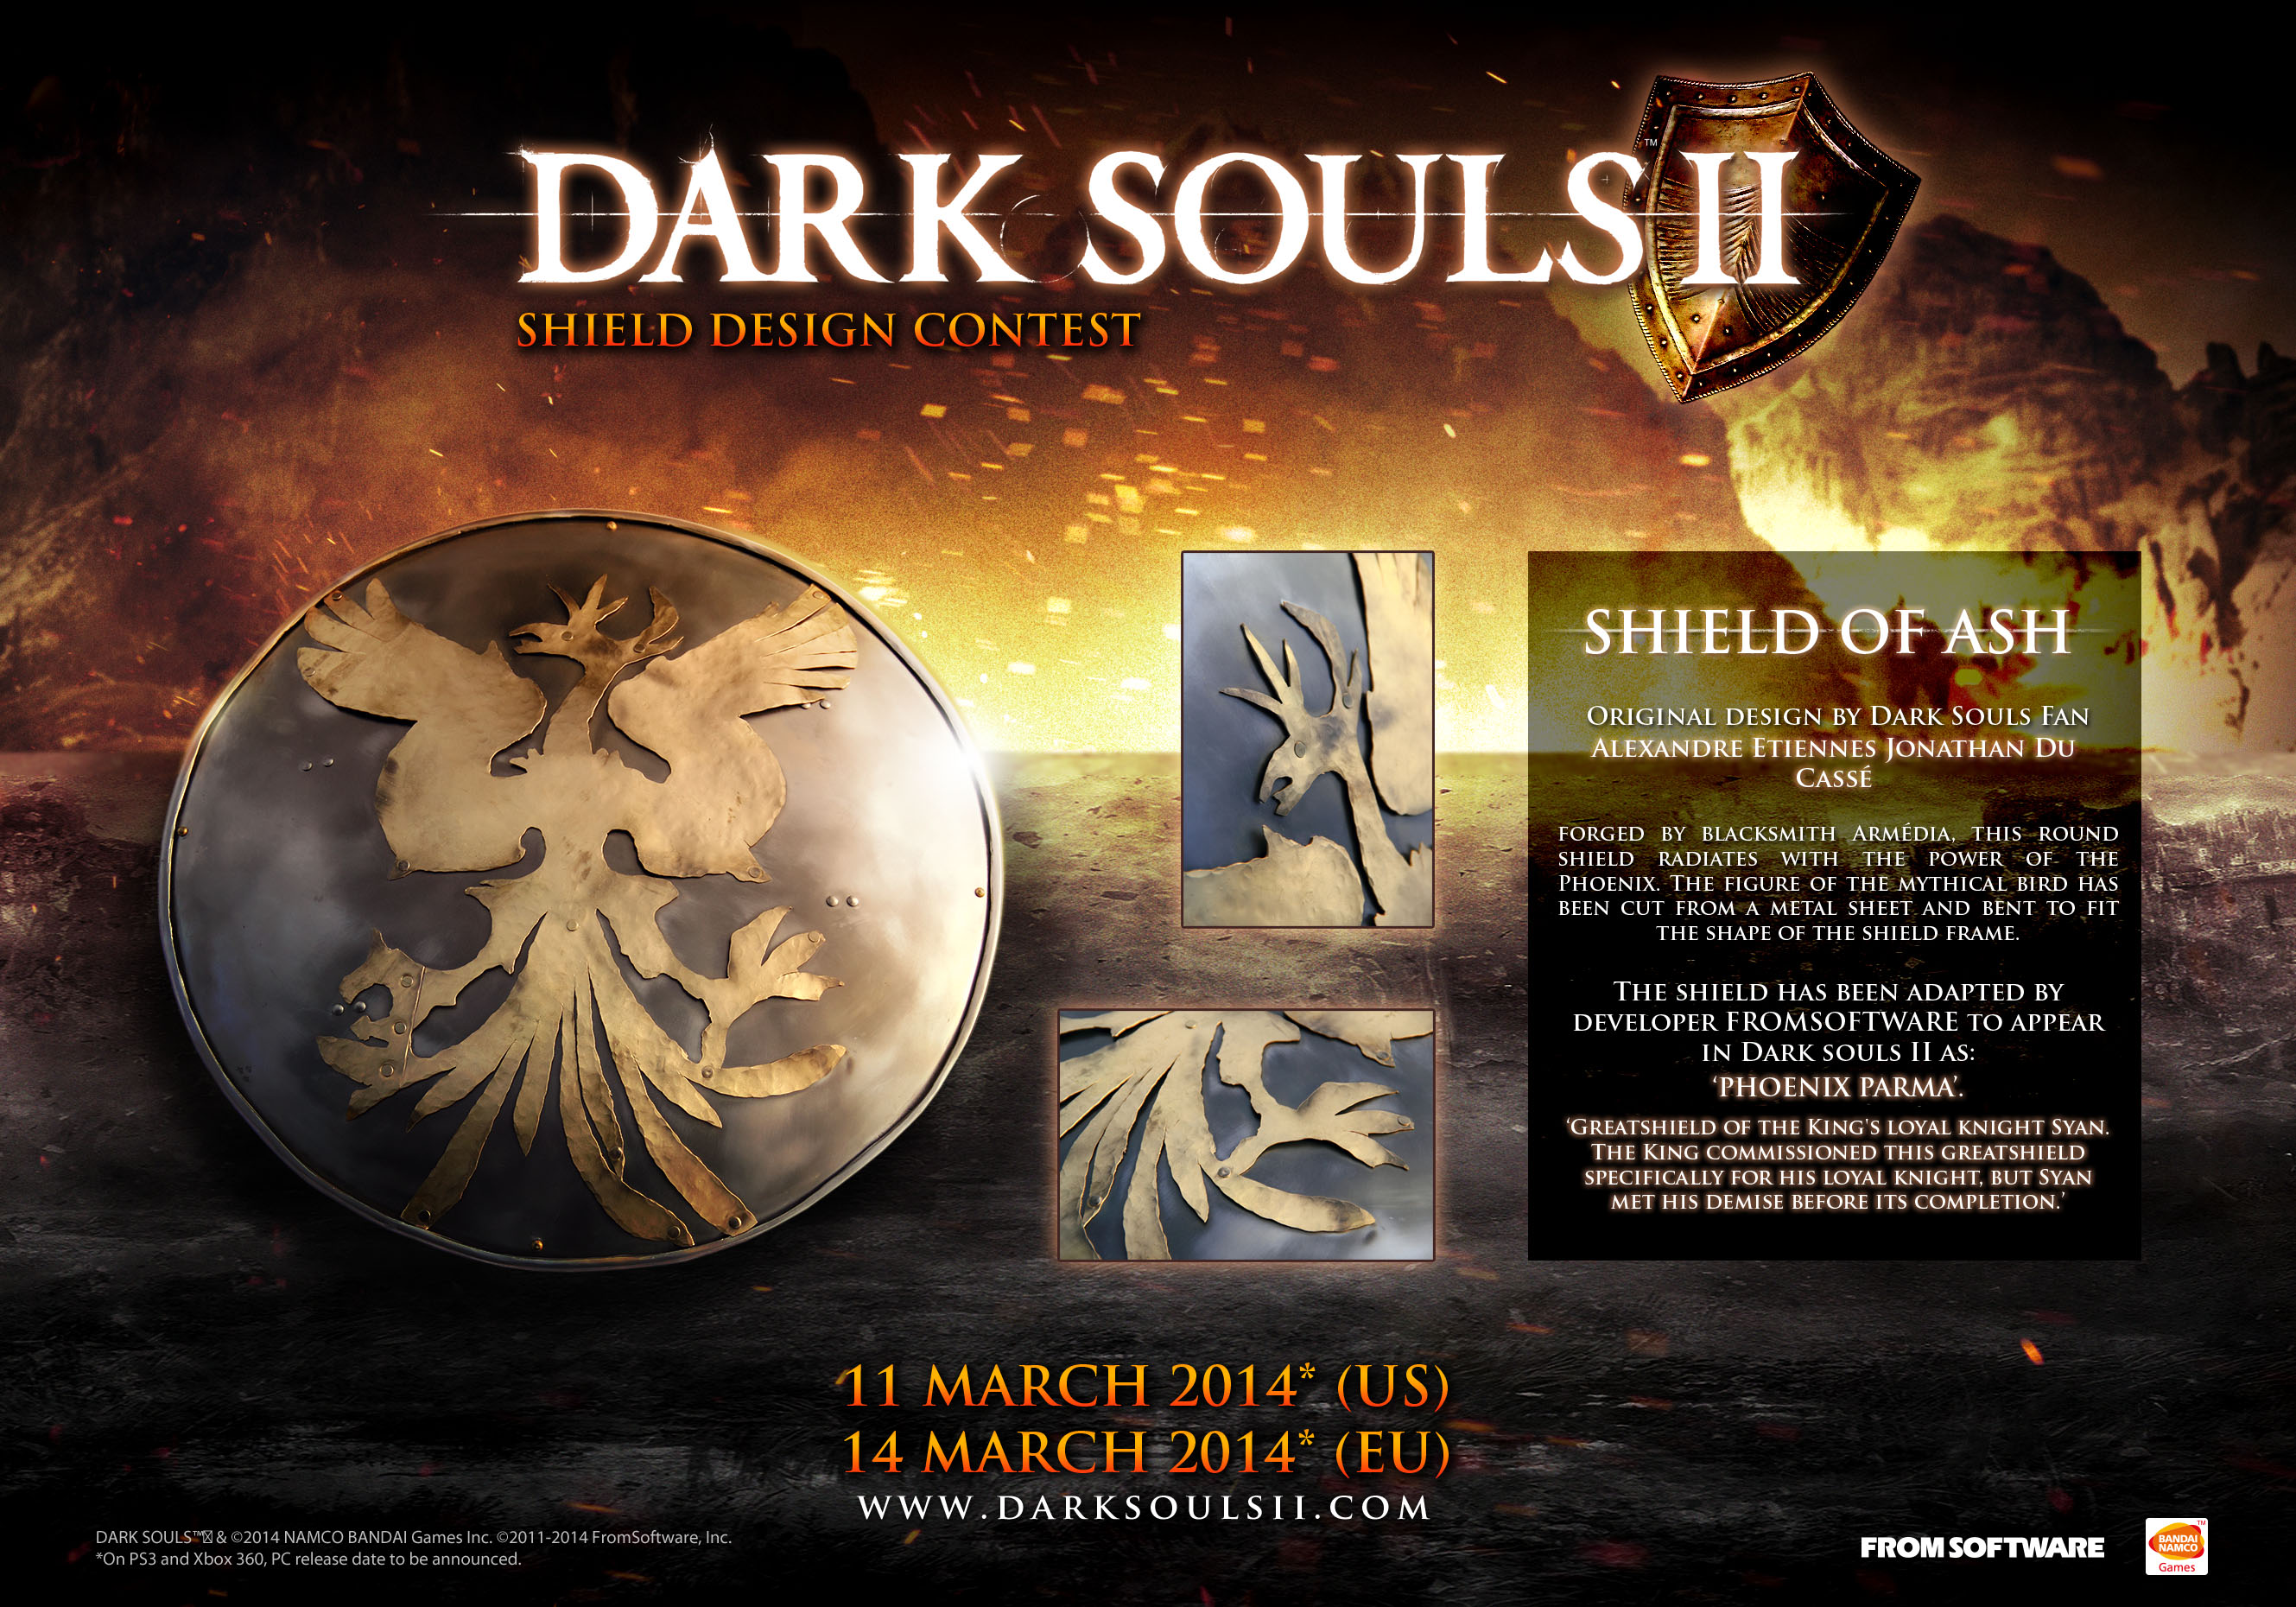 dark souls II shiled of ash